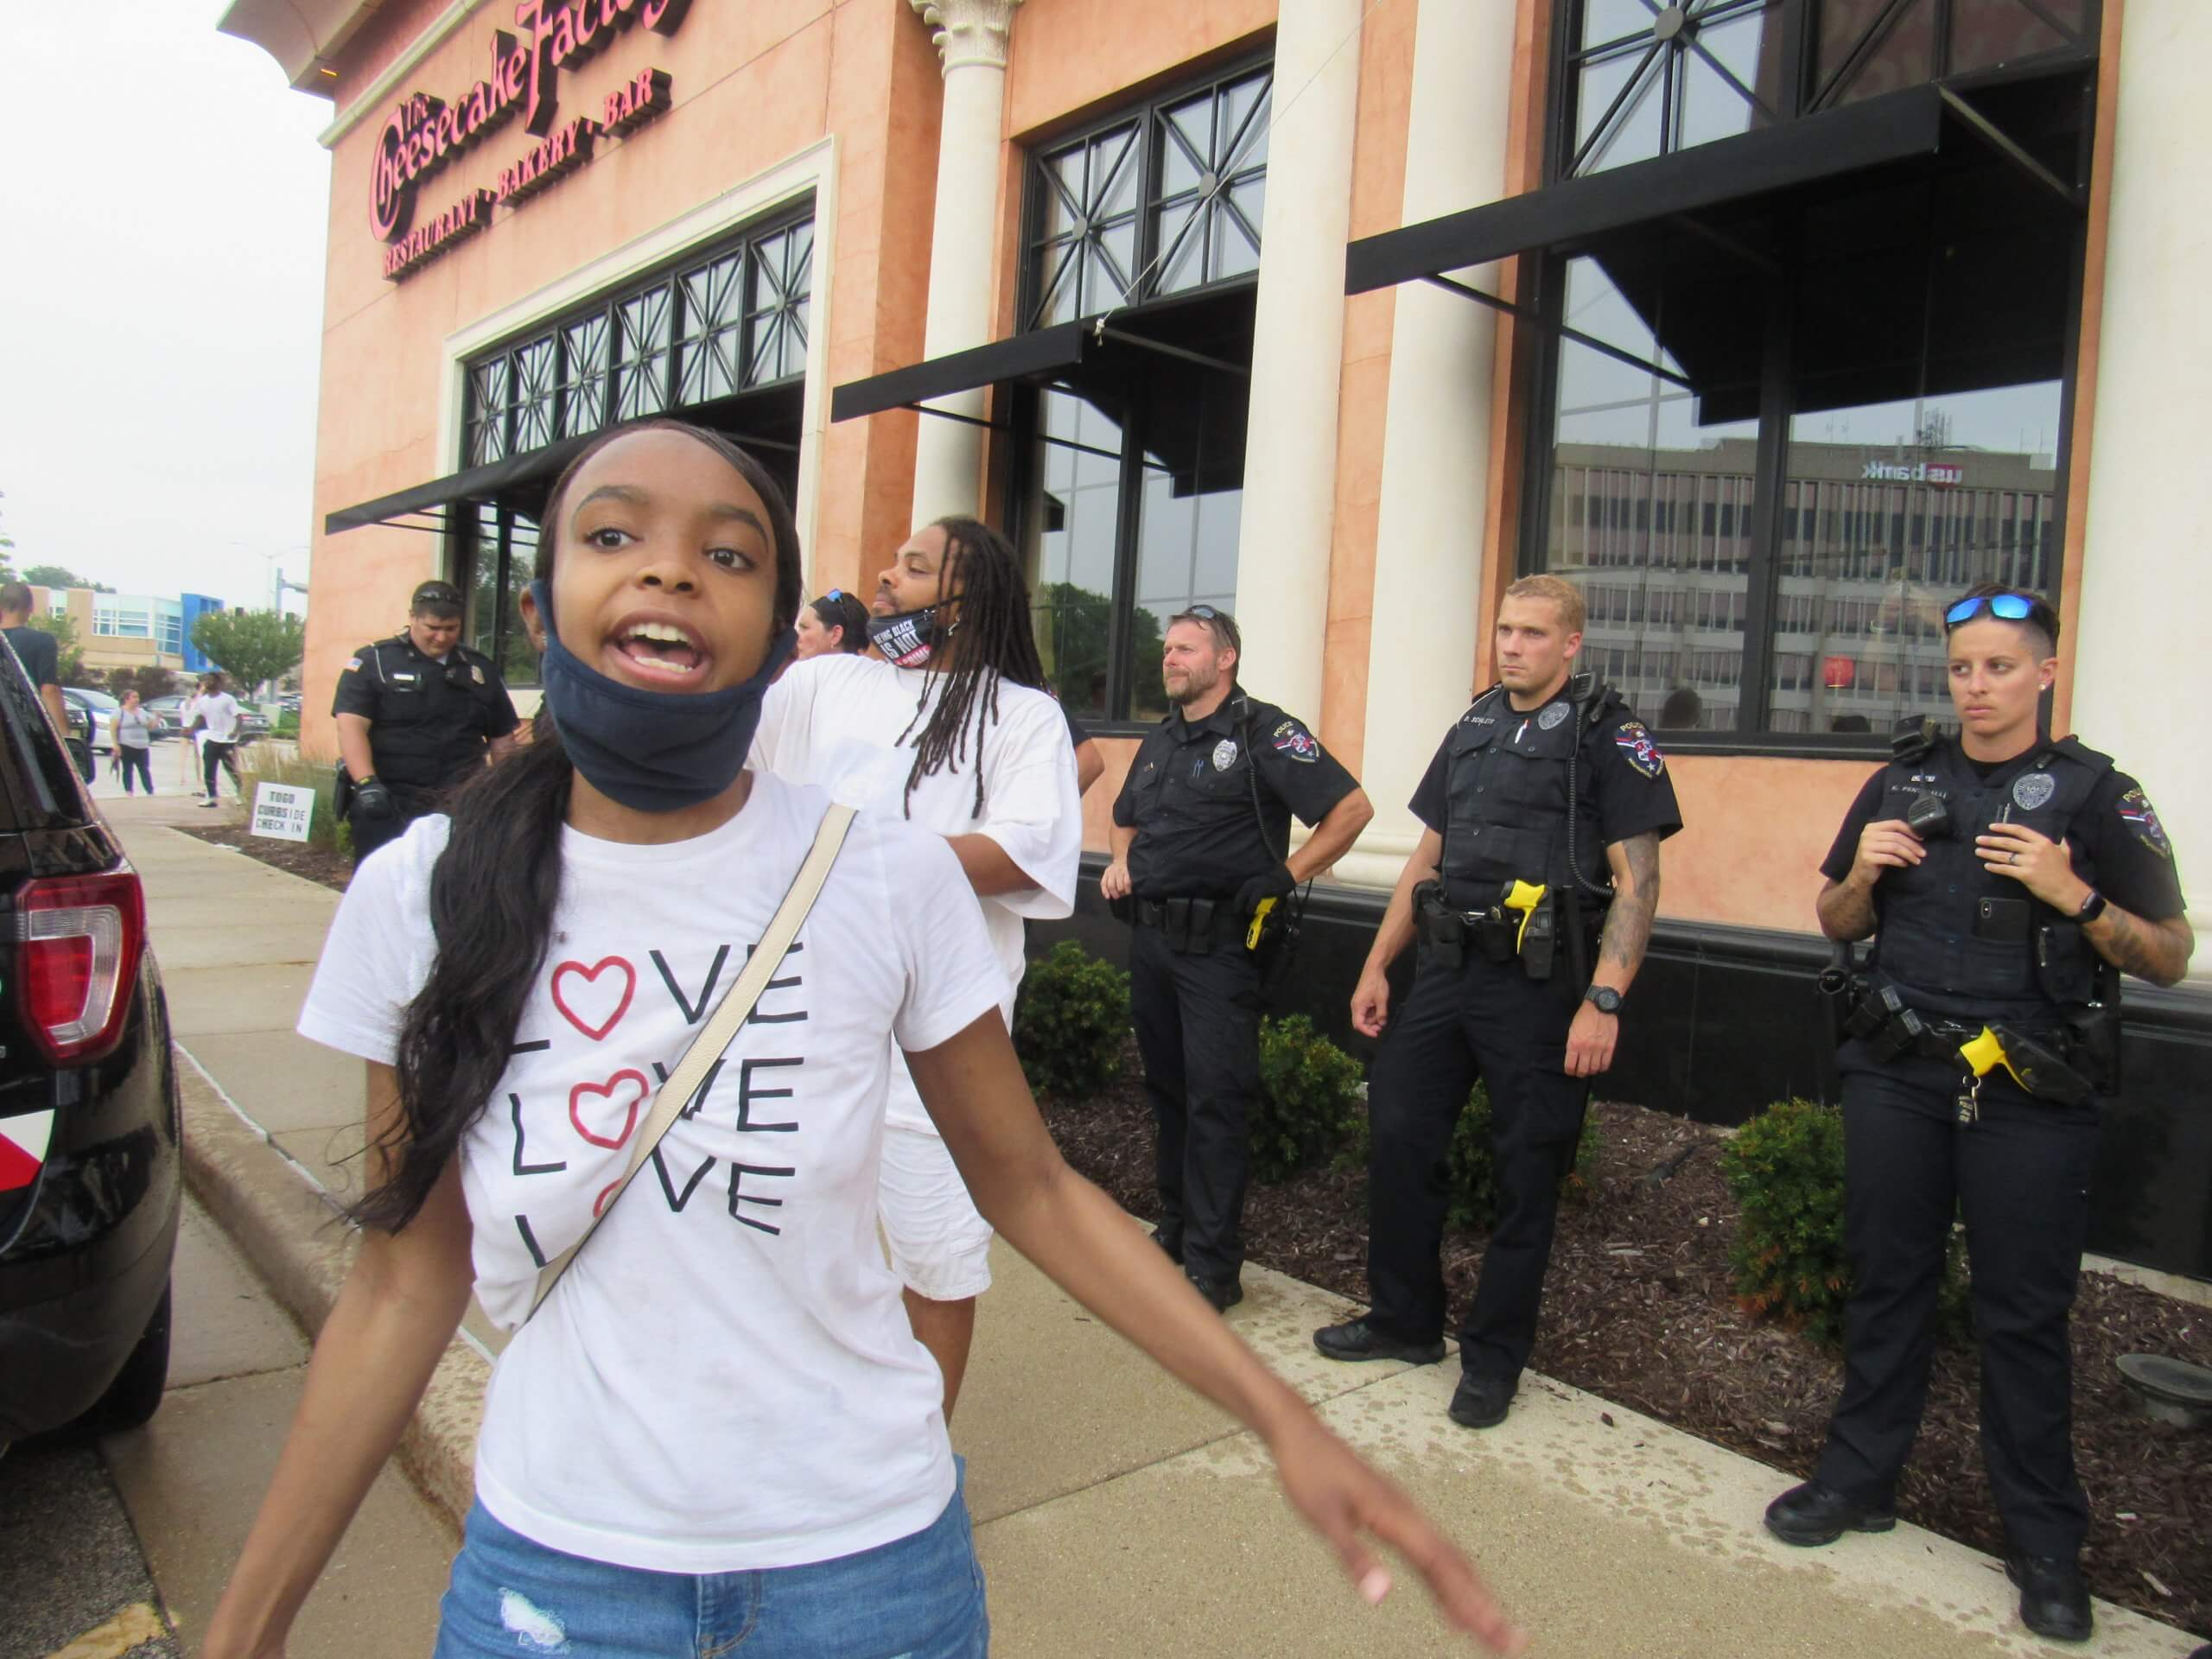 Protesters express their discontent at officers who rushed their protest and arrested several marchers in Wauwatosa. (Photo by Isiah Holmes)